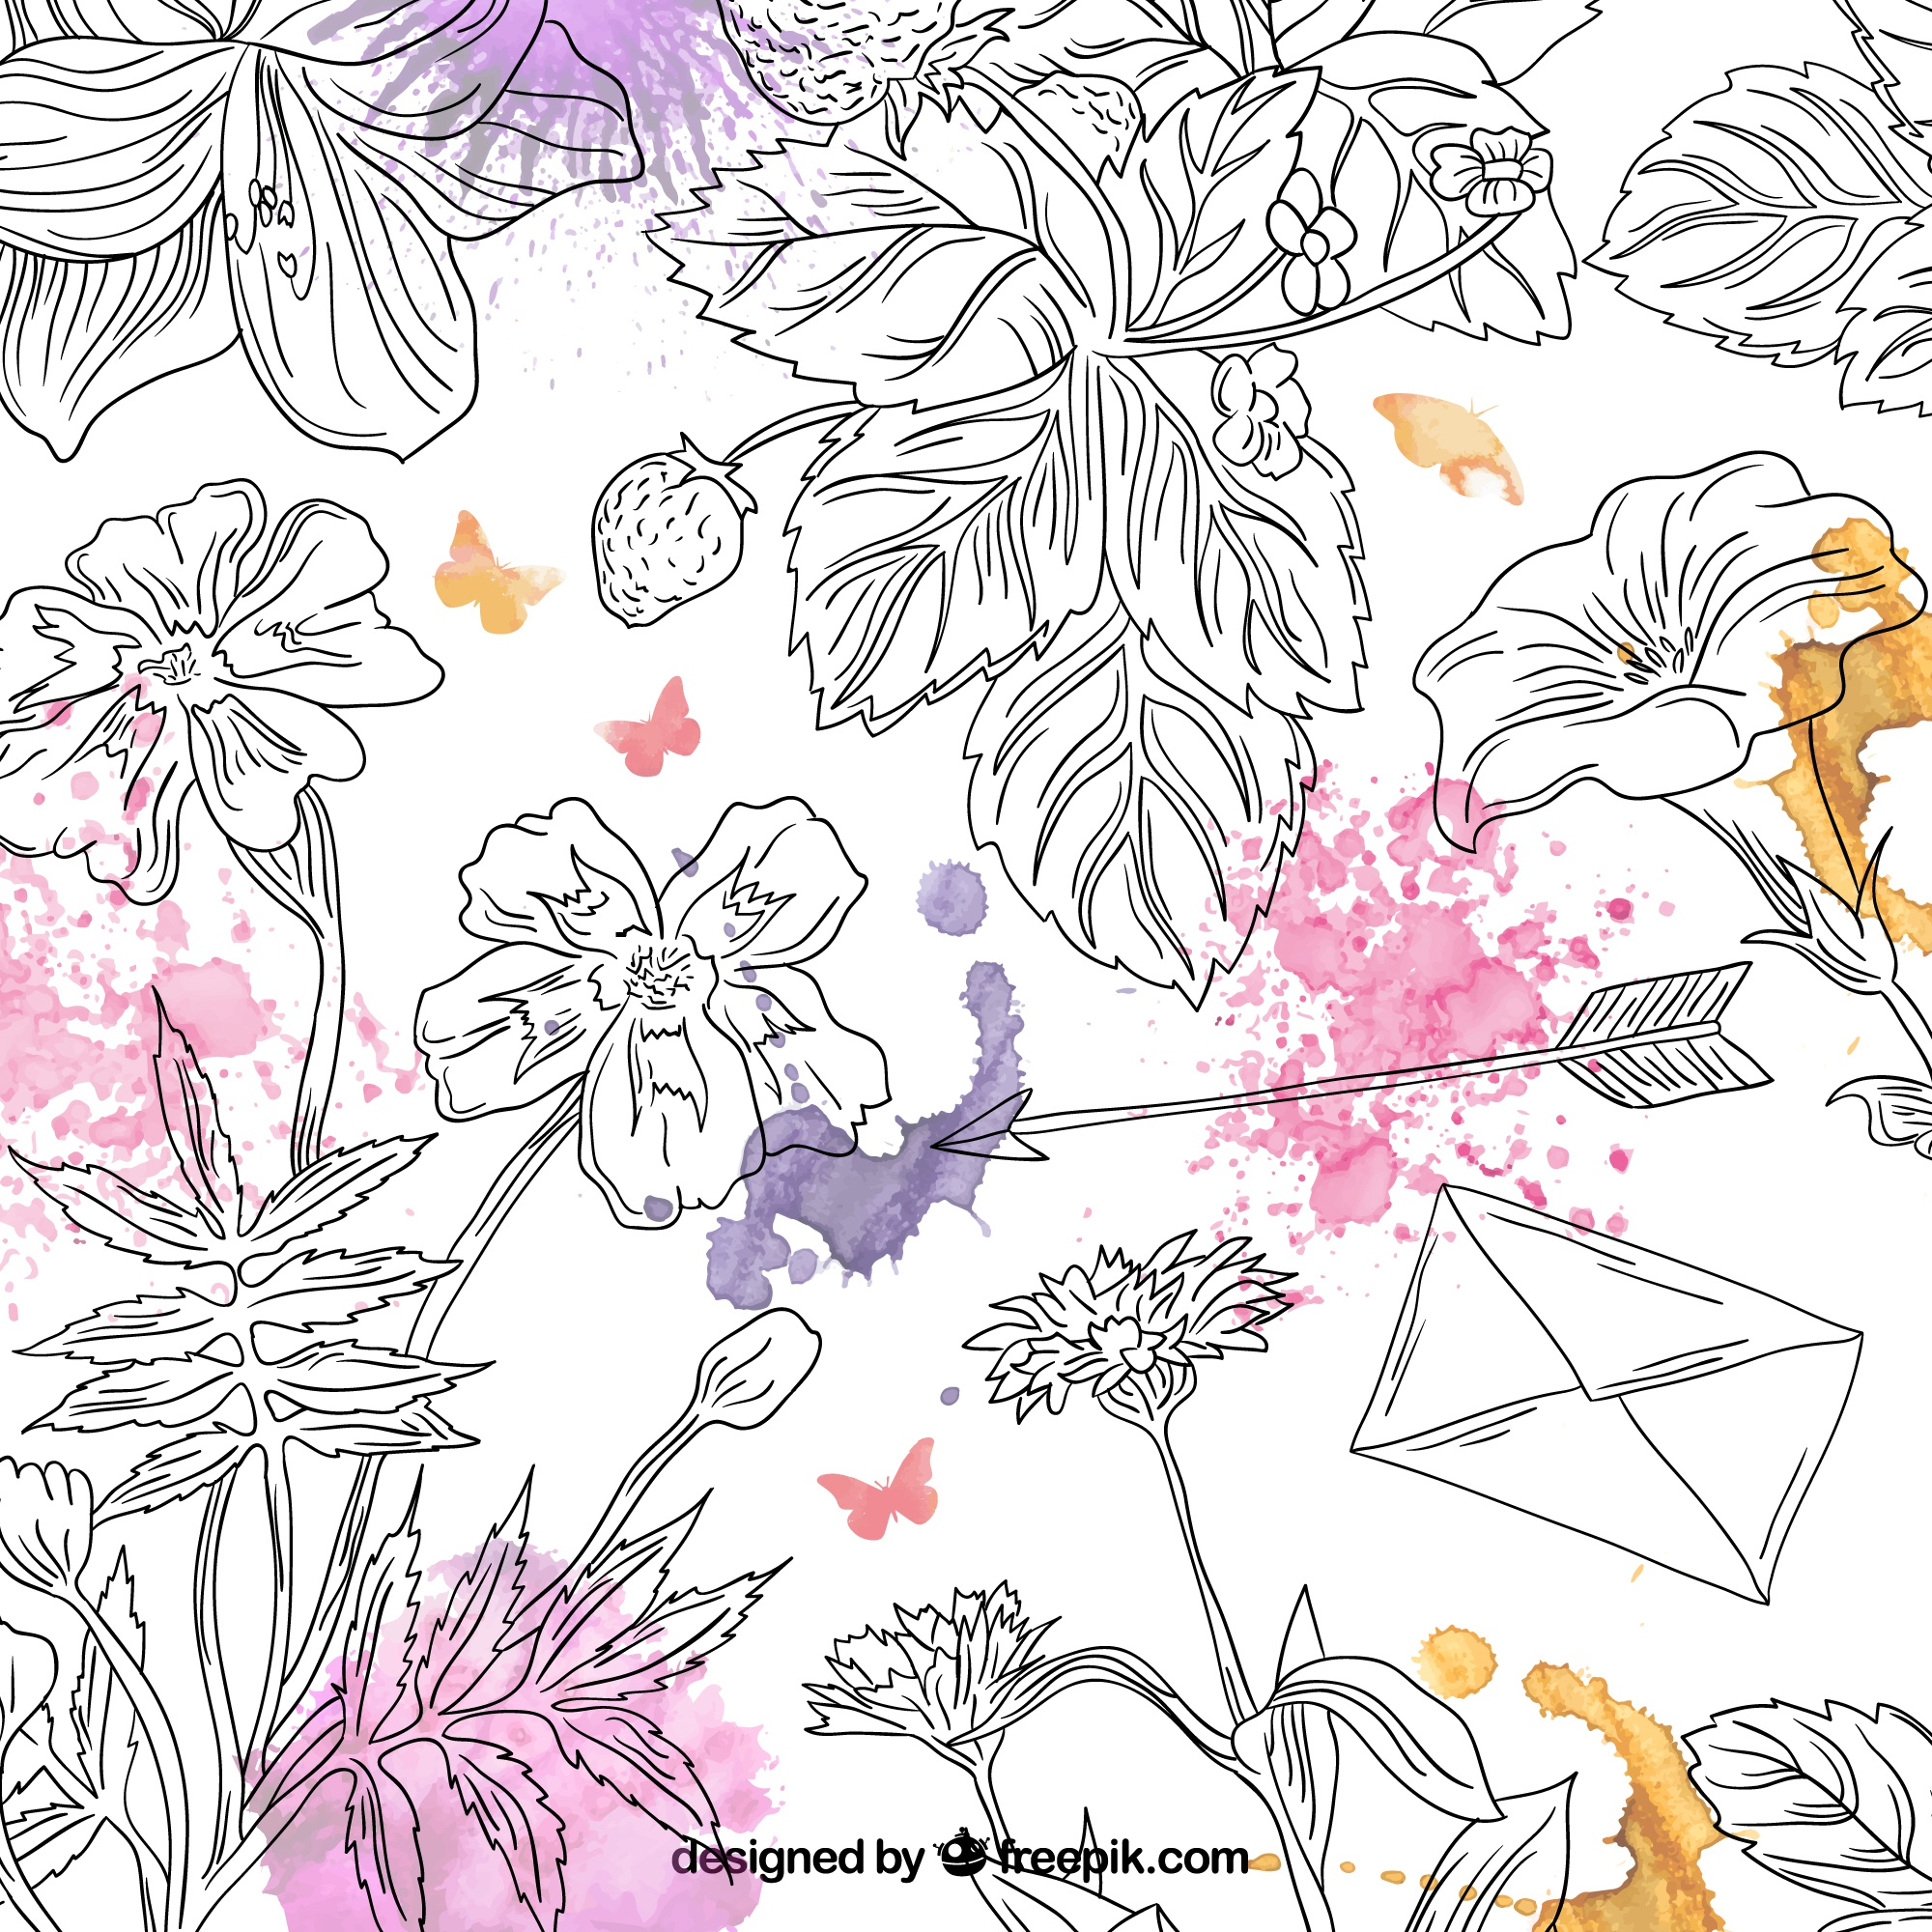 Hand drawn floral background with watercolor splashes